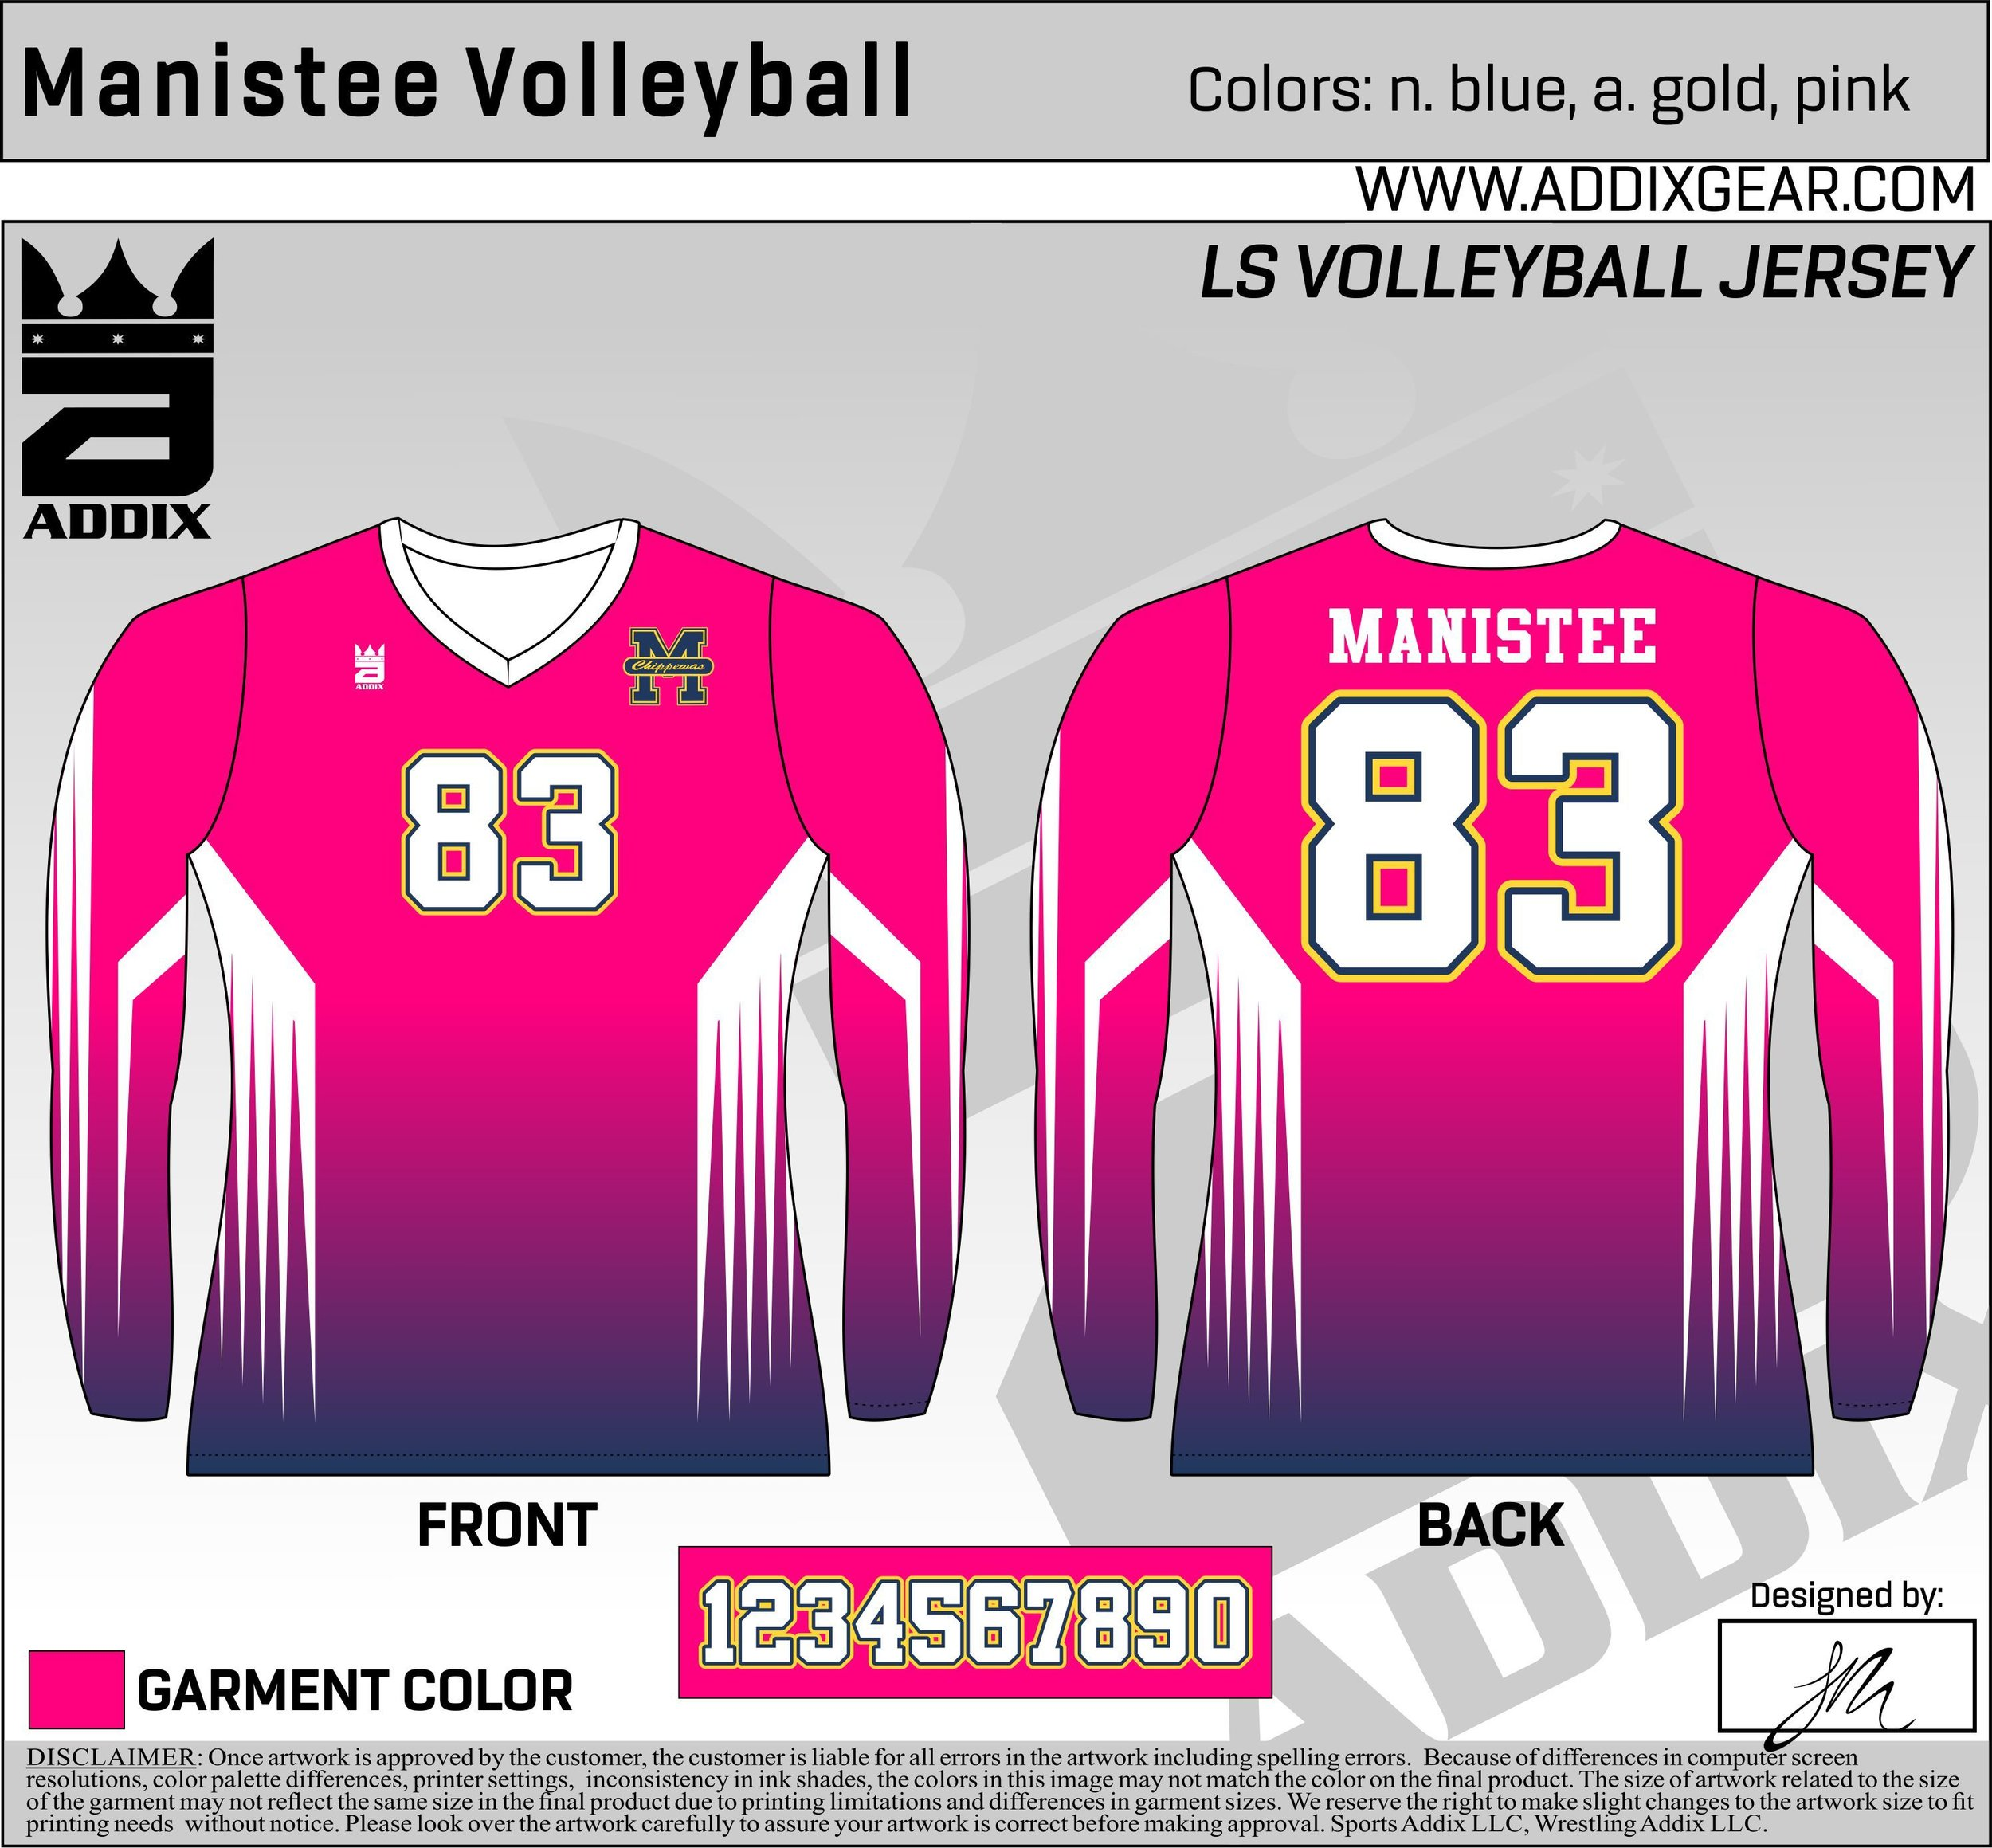 Manistee Volleyball Pink-Out Jerseys - These were the jerseys manistee wore for their pink-out game!